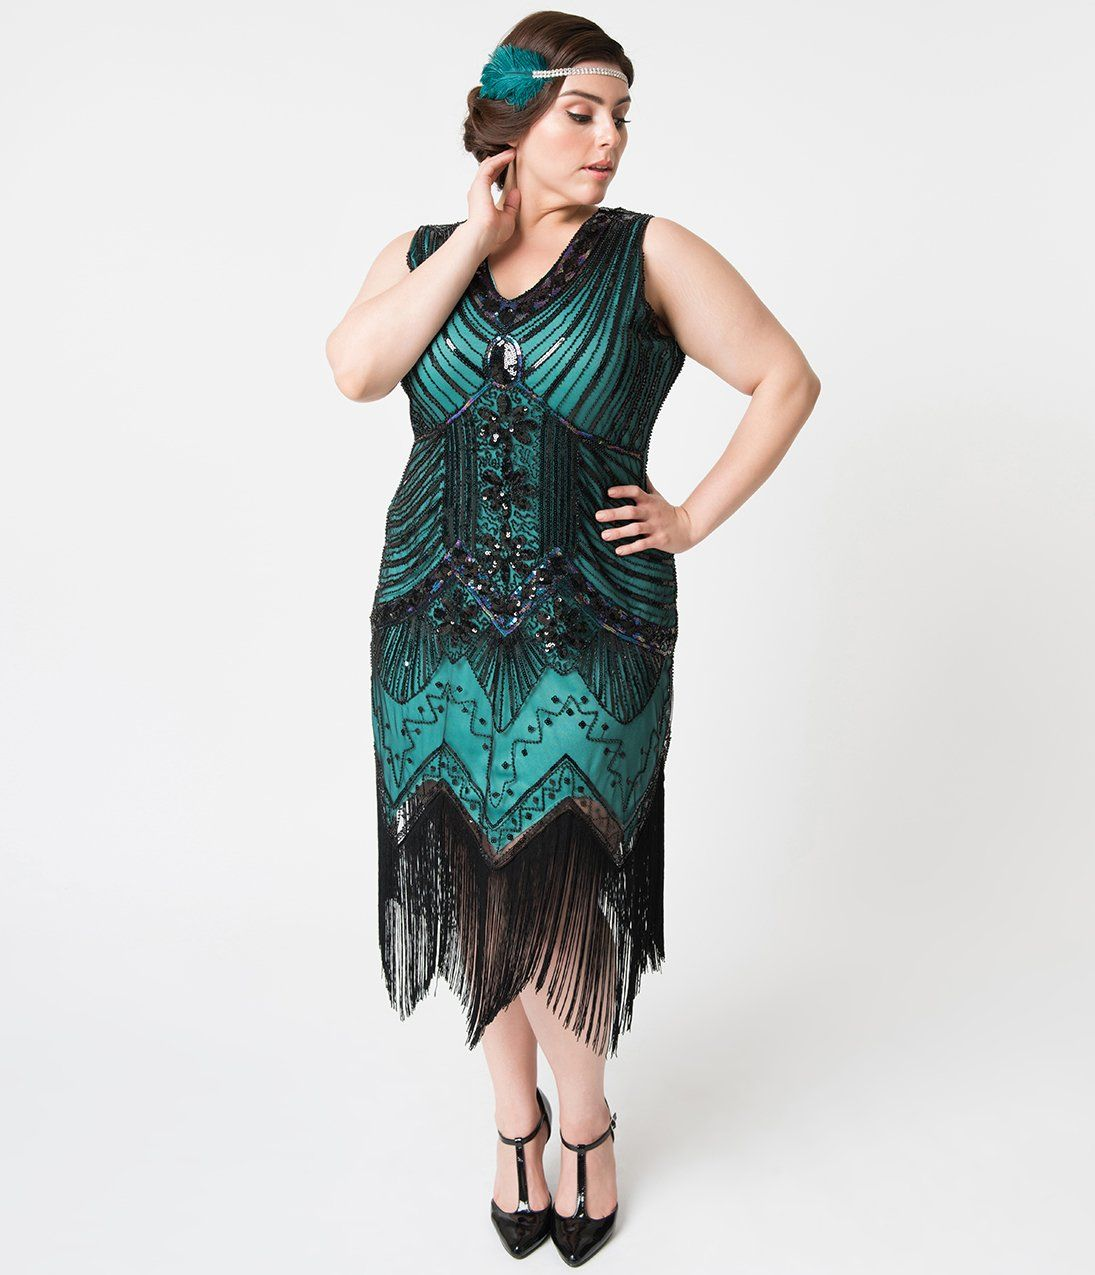 Shop 1920s Plus Size Dresses and Costumes in 2020 | Plus ...